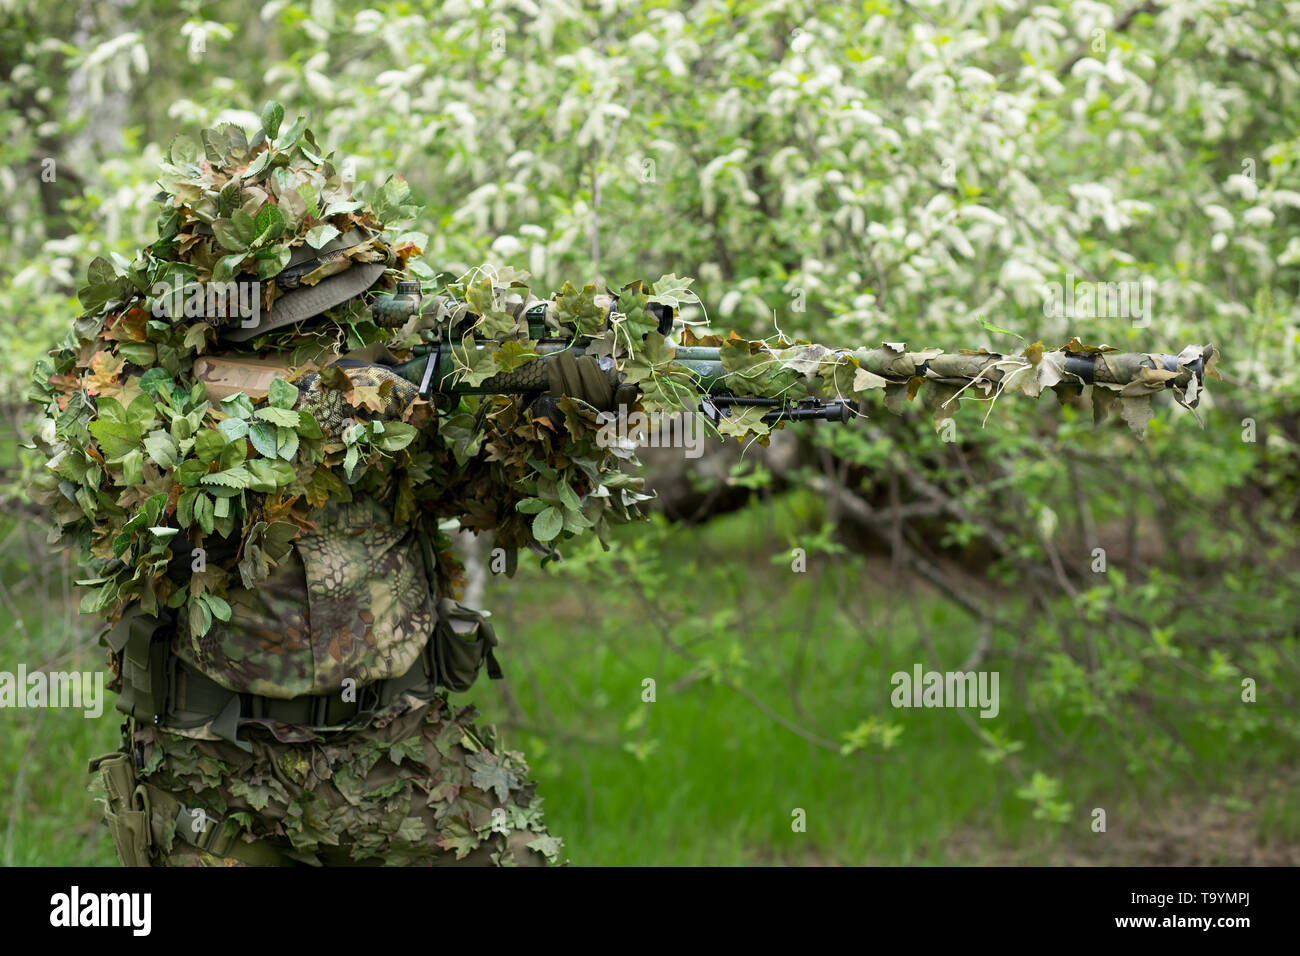 Closeup man sniper in green camouflage military clothing shoots a rifle in the green forest in the summer nature - Stock Image